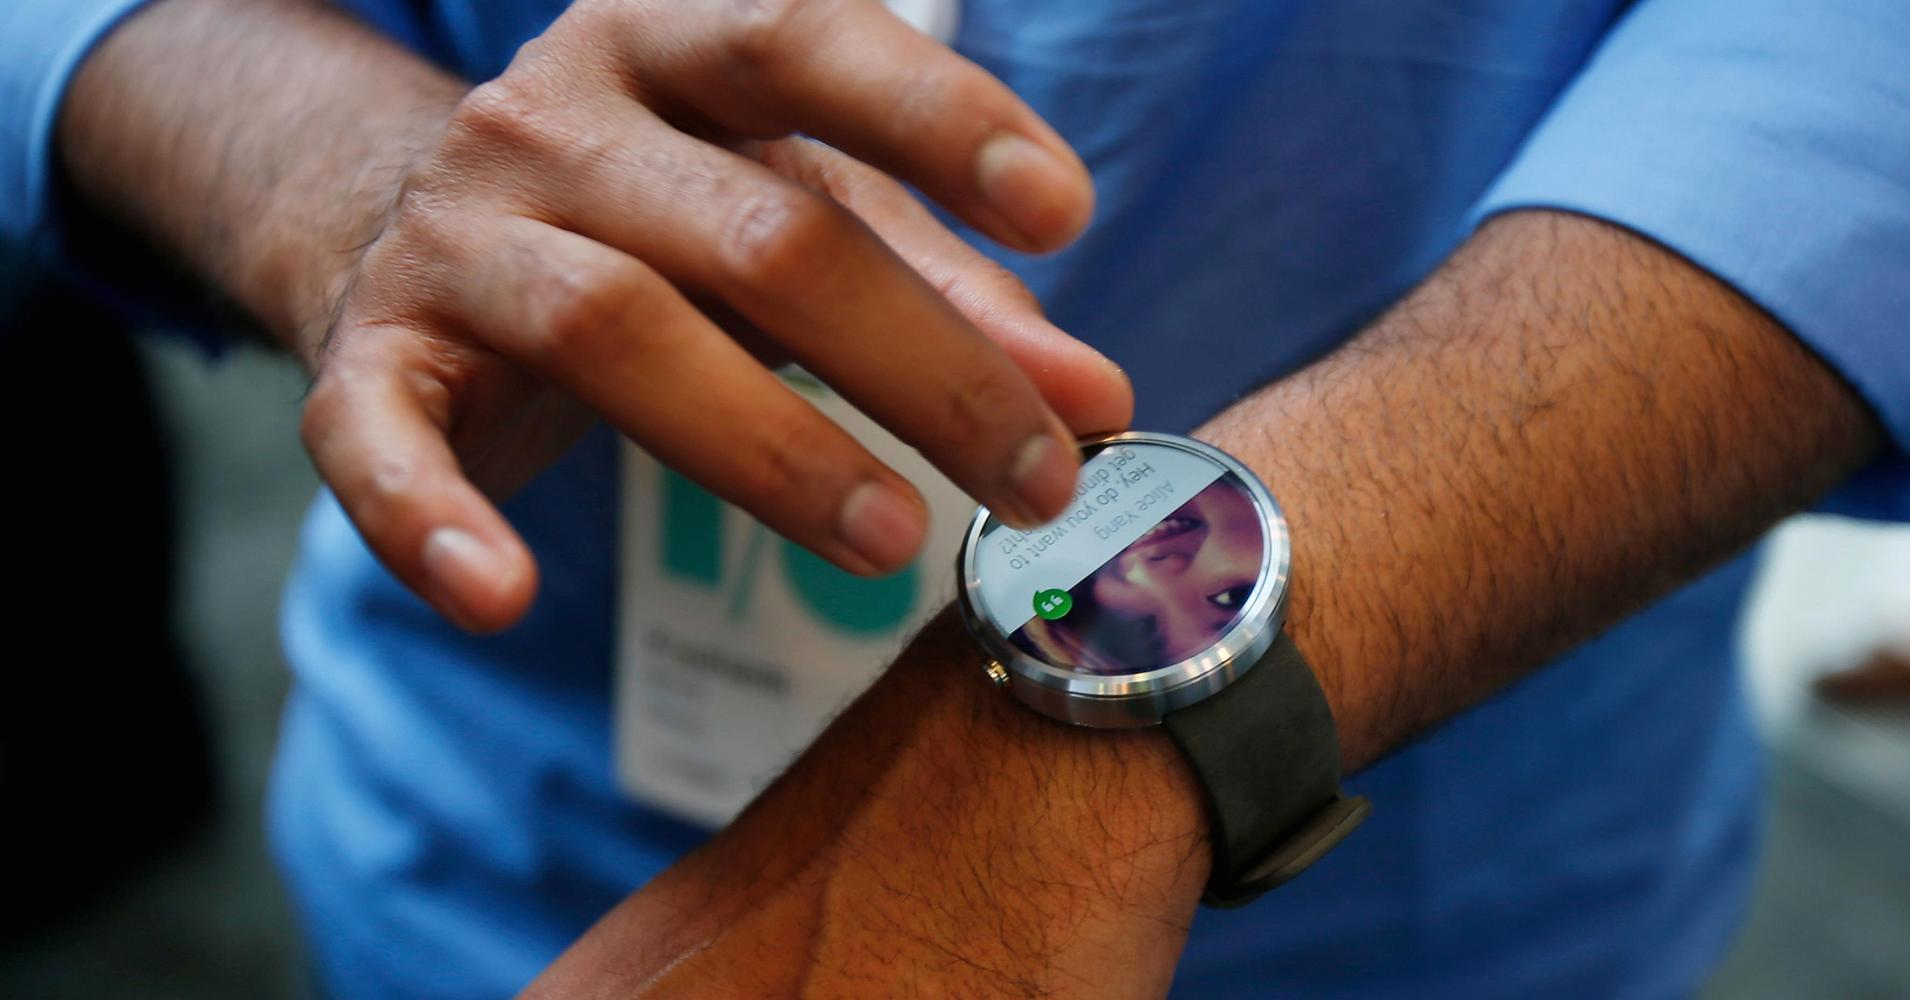 Google expands Android Wear watch platform to iOS